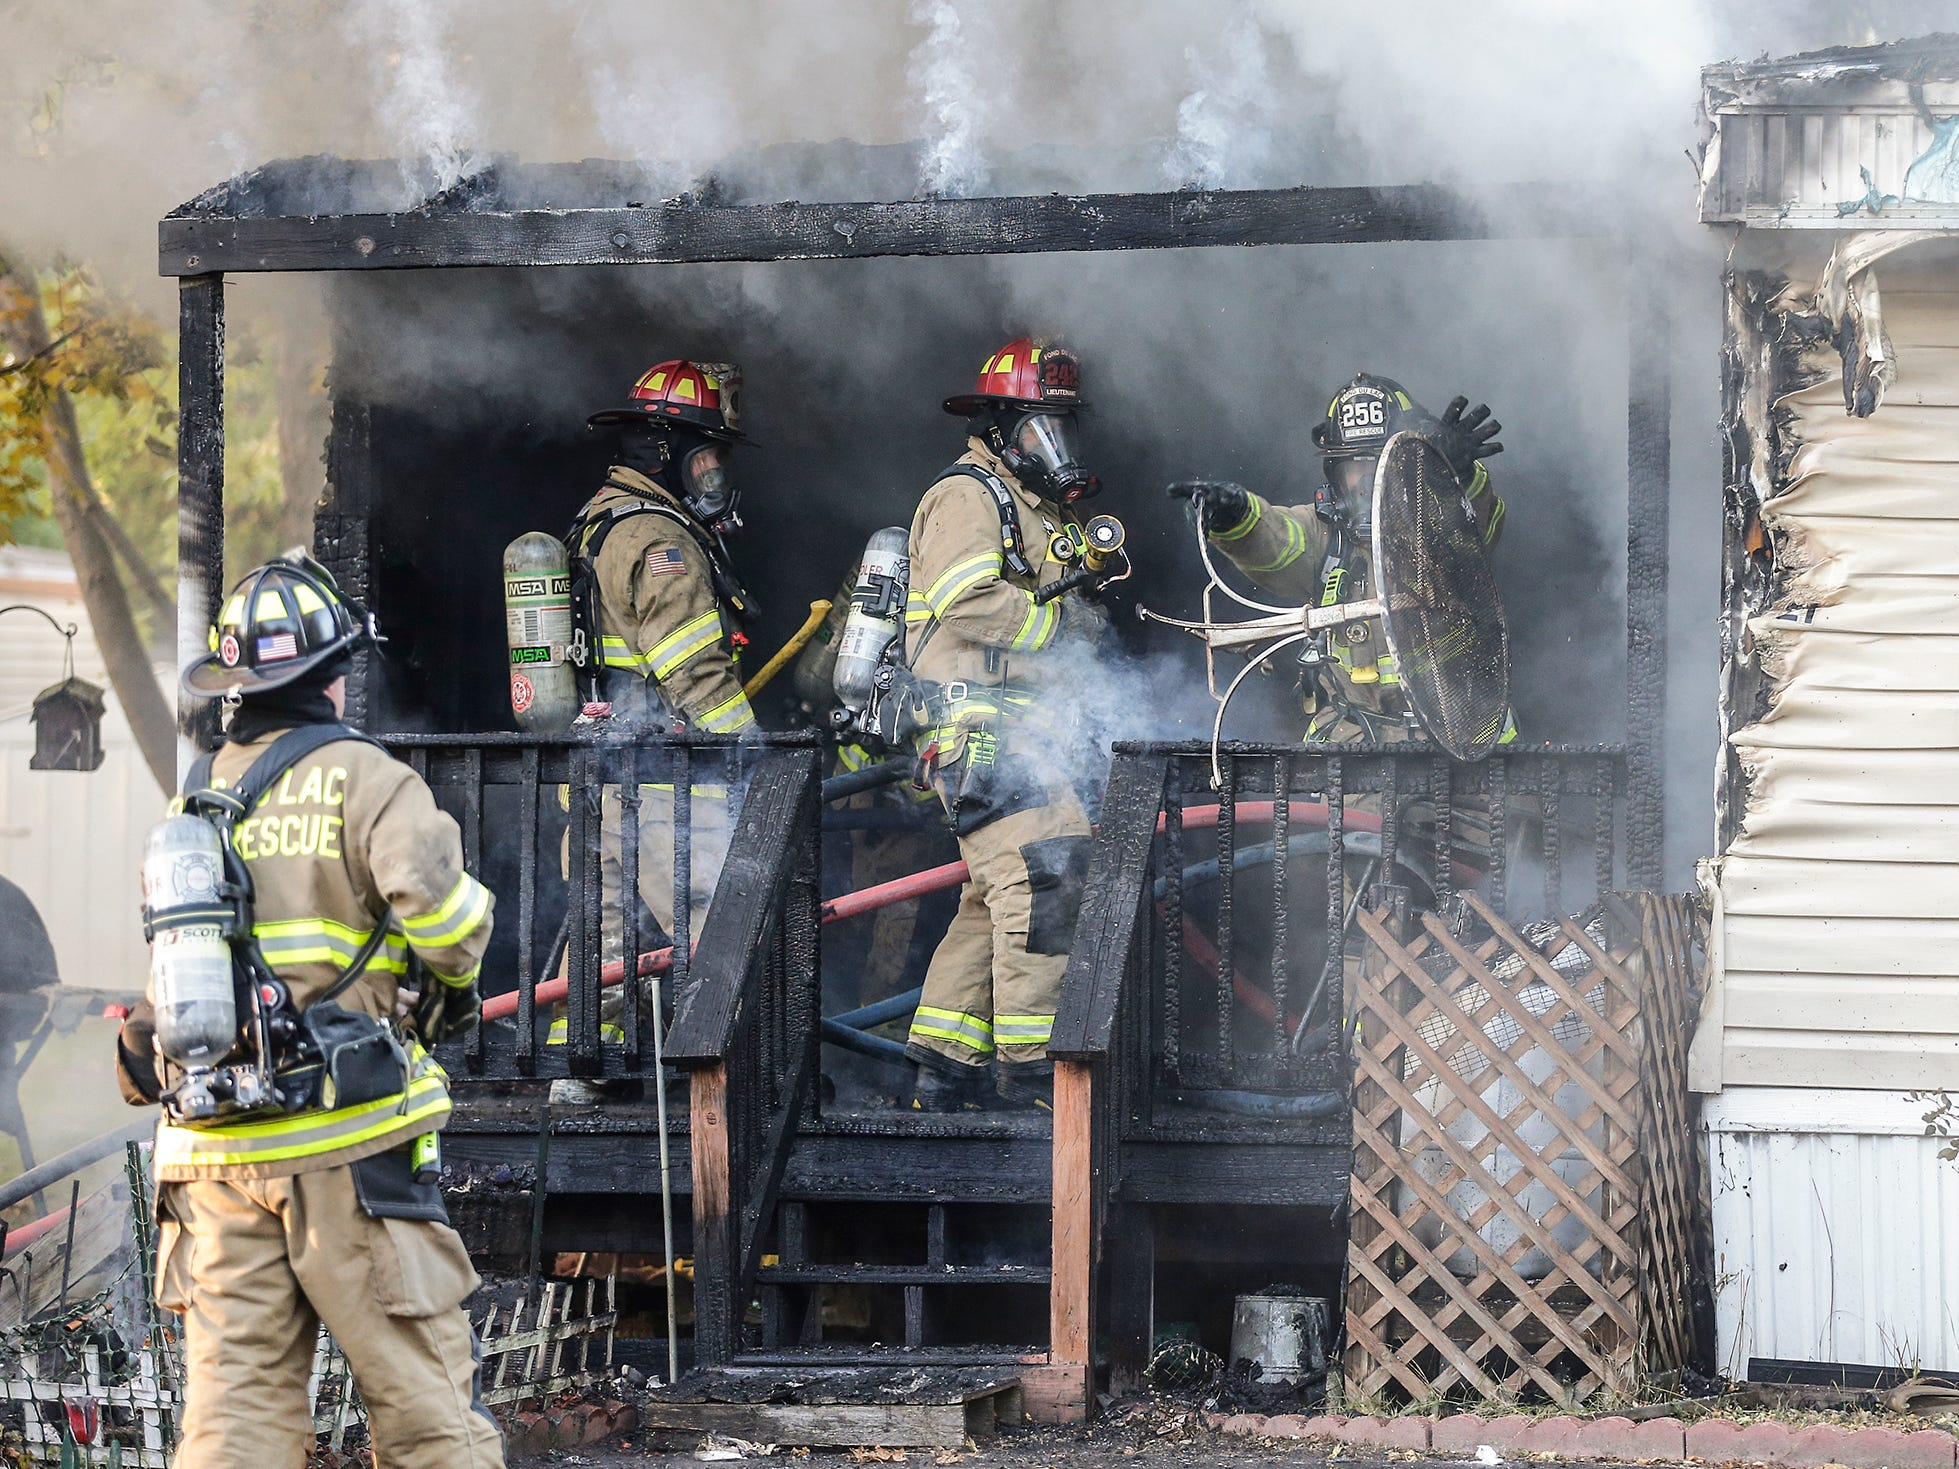 A fire fighter throws a piece of furnature out of a mobile home that was on fire Tuesday, October 23, 2018 at 21 Gaslight Drive in the Gaslight Terrace mobile home park in North Fond du Lac, Wisconsin. Multiple fire departments were on hand to fight the blaze. Doug Raflik/USA TODAY NETWORK-Wisconsin